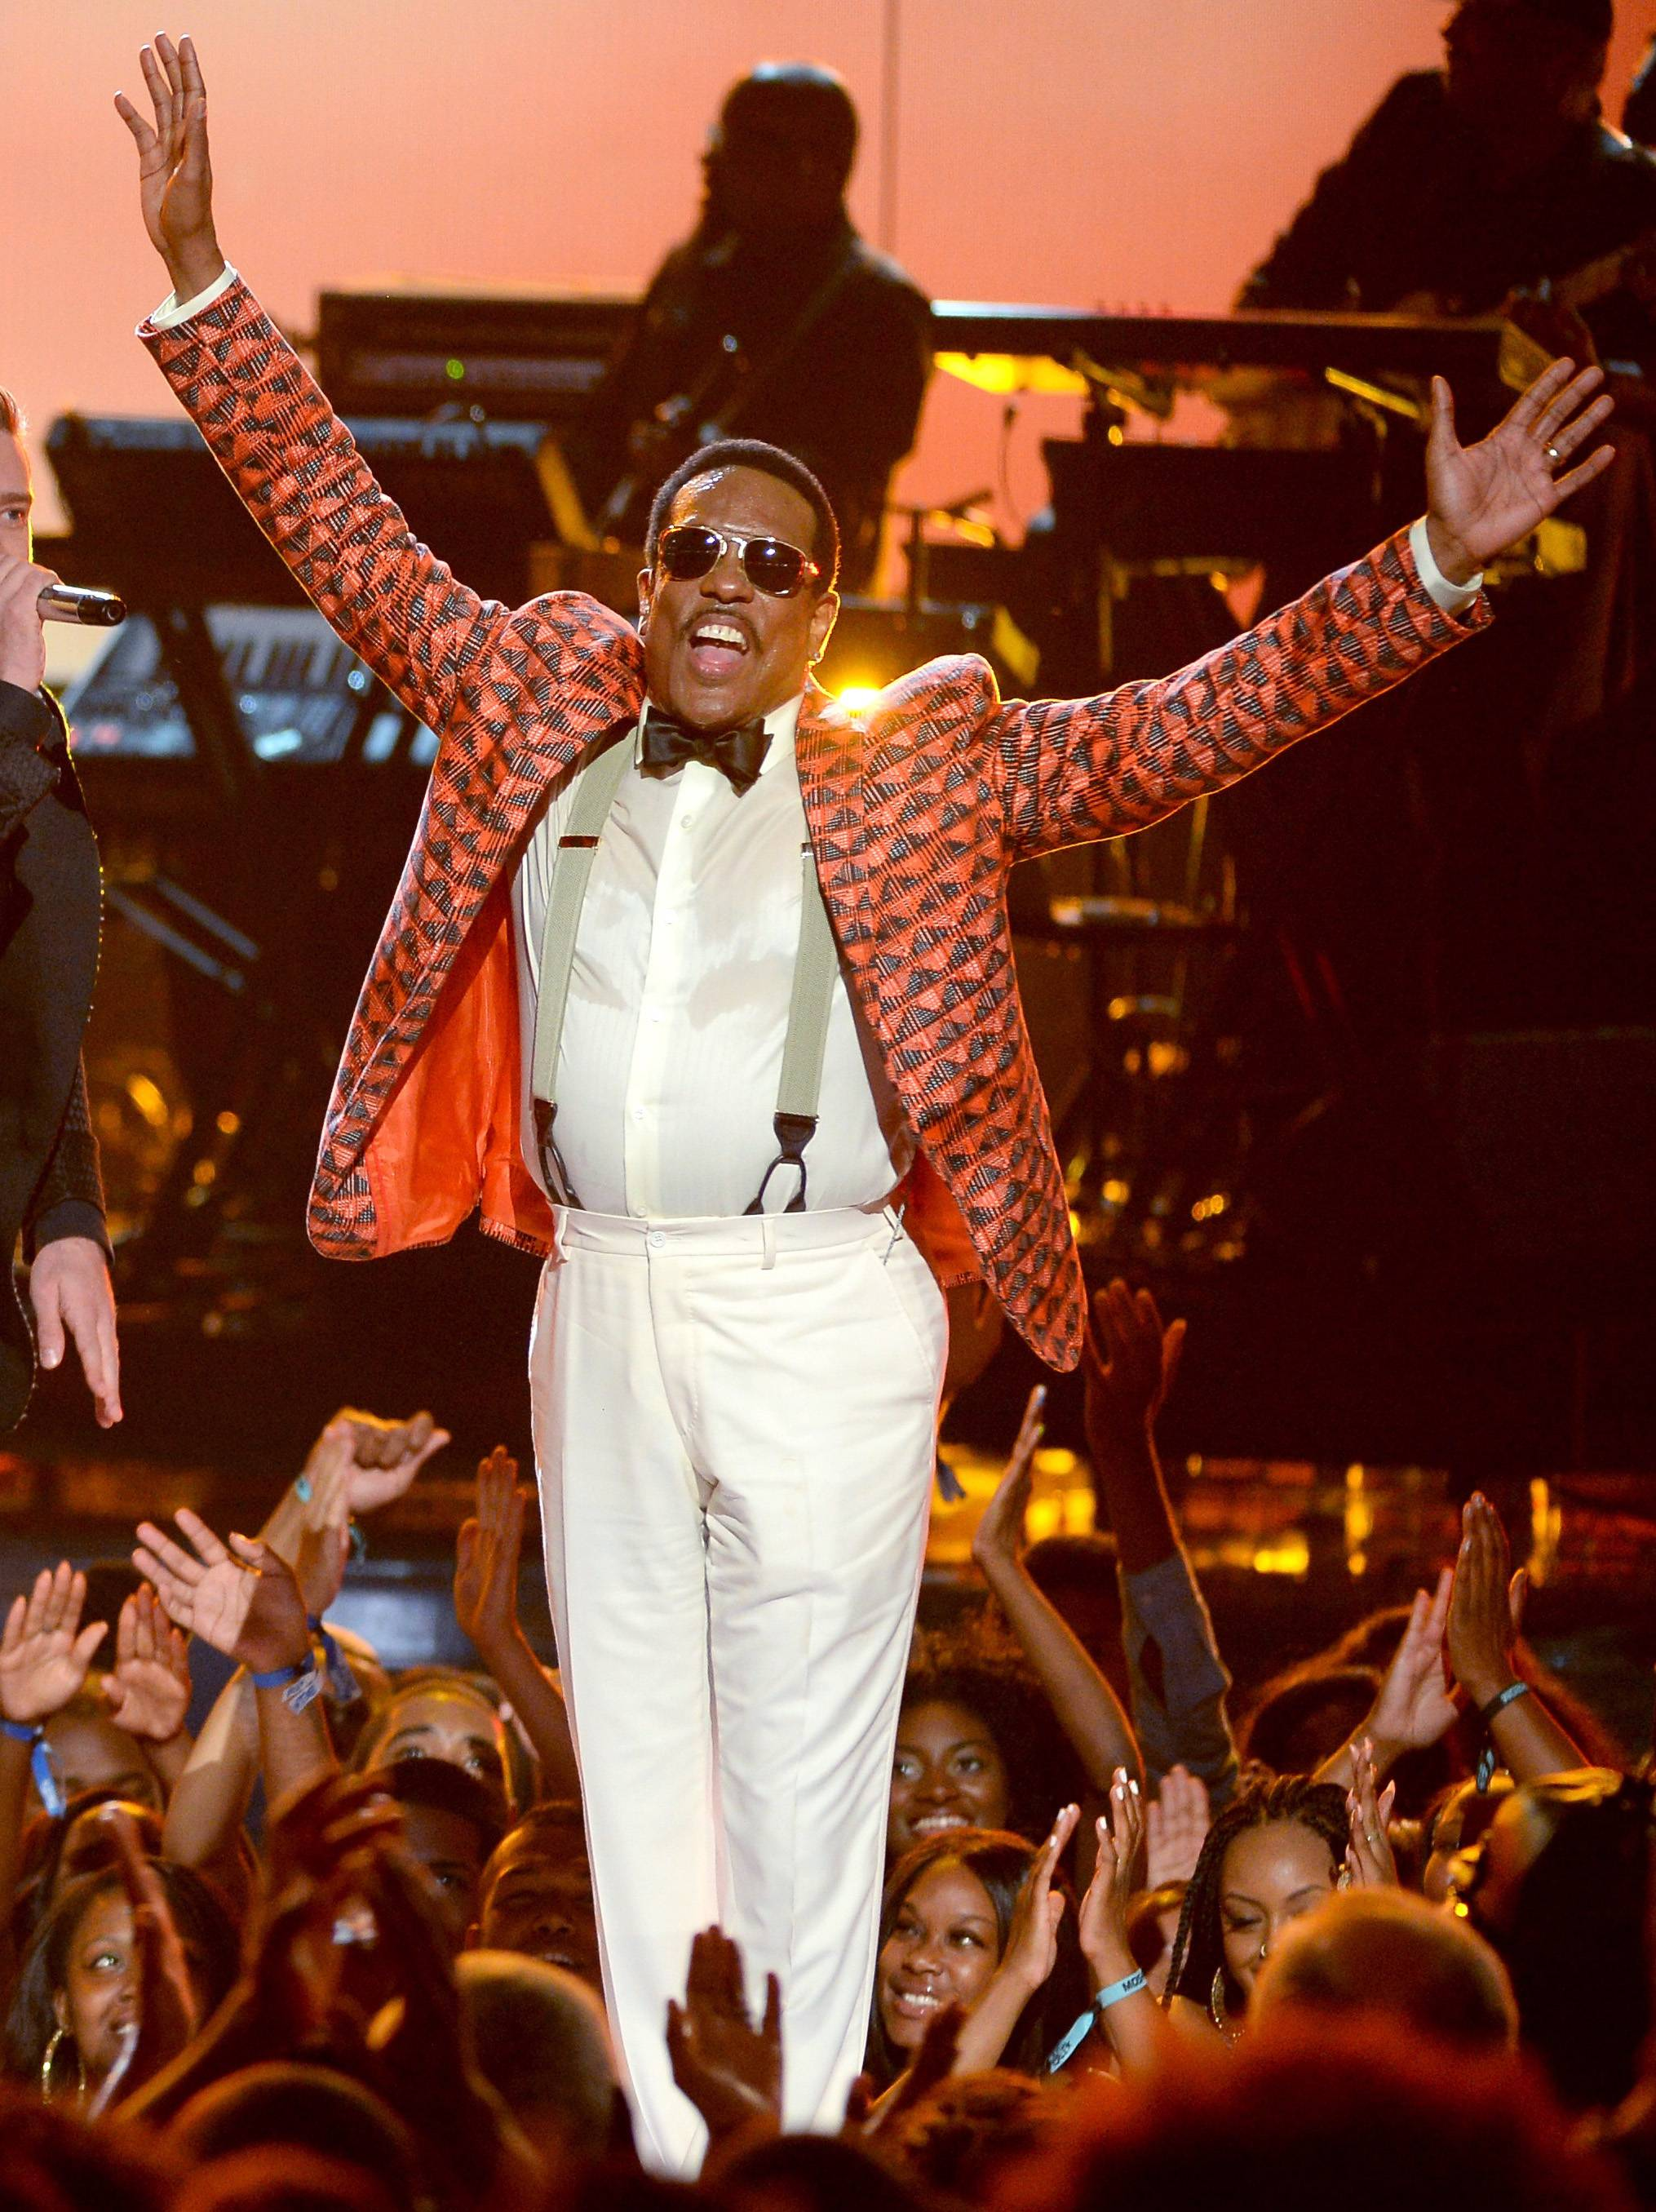 Best R&B/Soul Male Artist: Charlie Wilson - Music's favorite Uncle Charlie still has it! After three decades of hit-making, the Soul Train Legend made it clear he's still outstanding.(Photo: Mark Davis/Getty Images for BET)